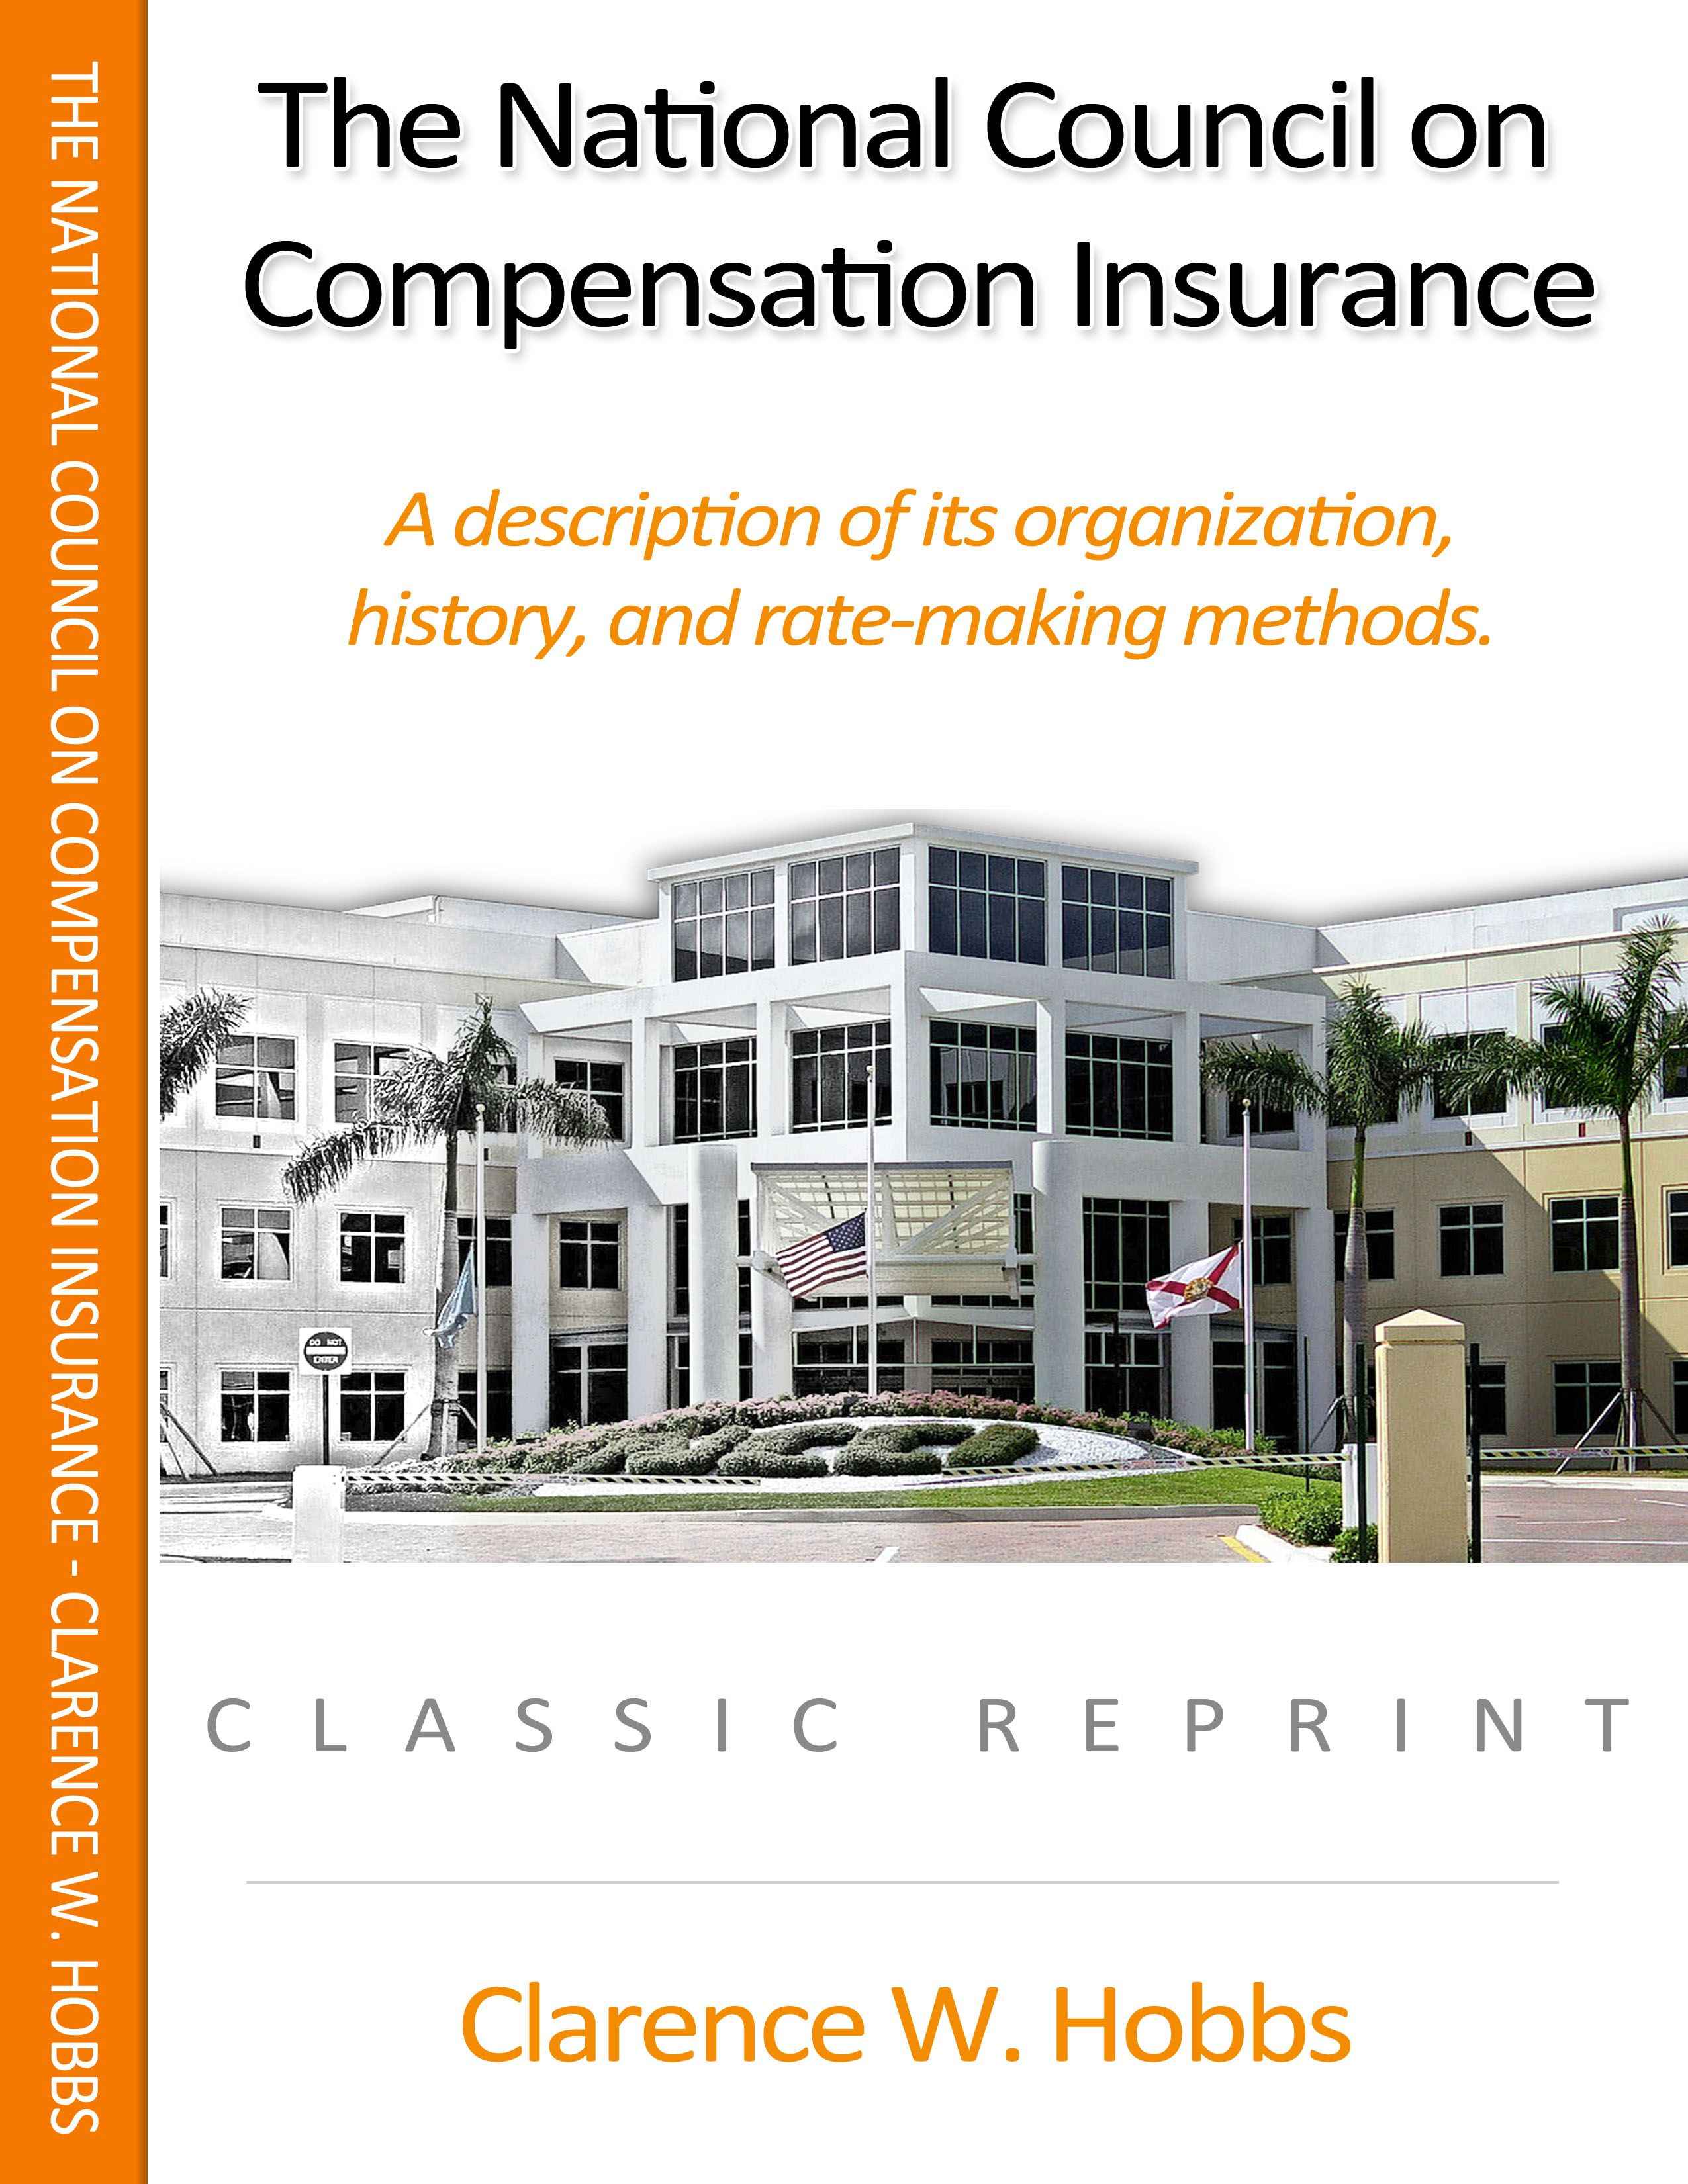 The National Council On Compensation Insurance By Clarence Hobbs